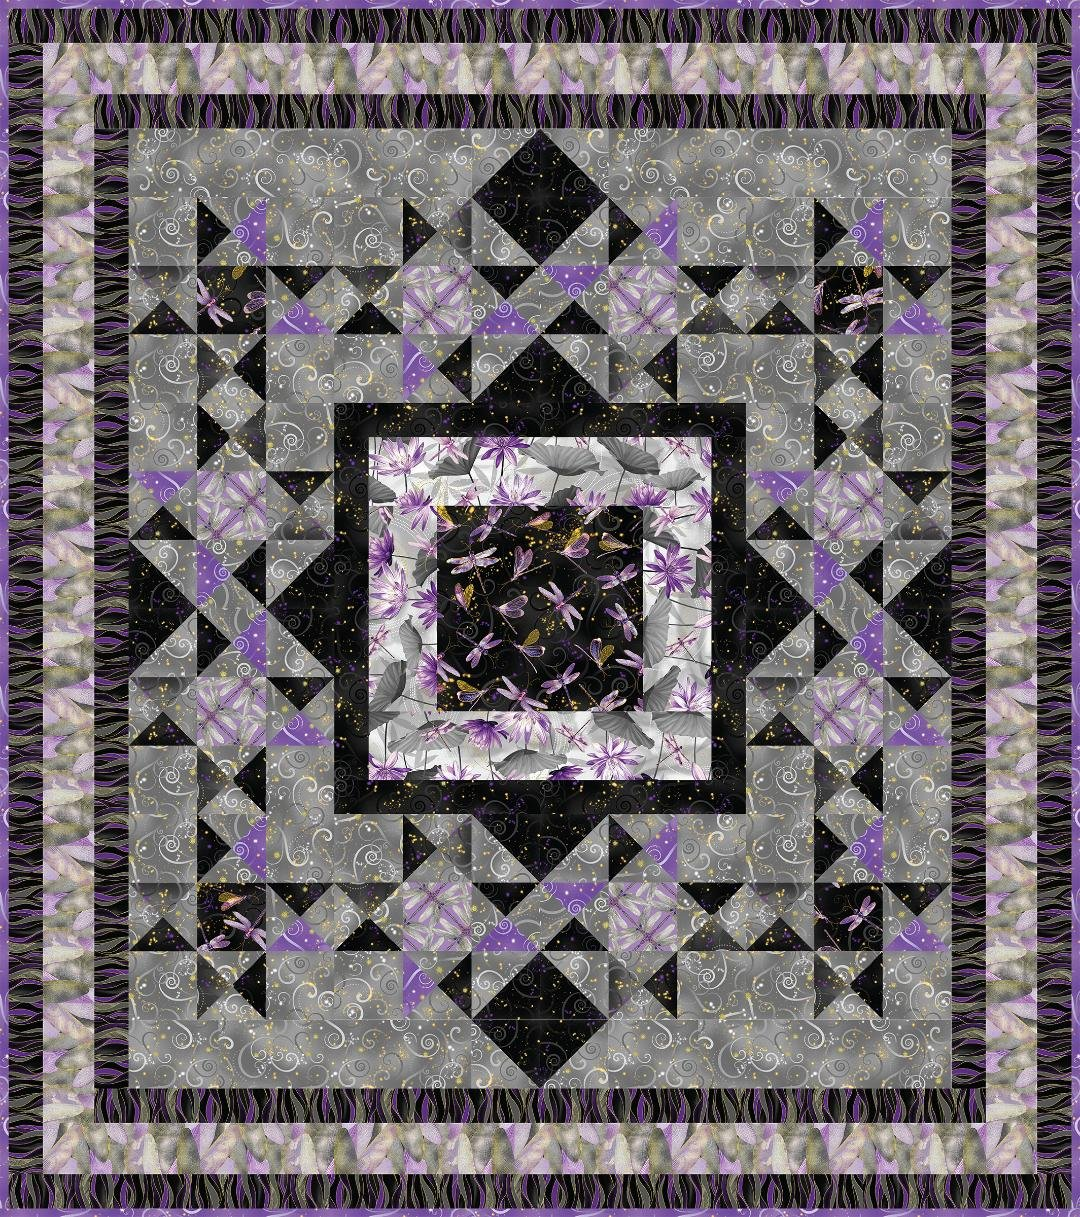 Dragonfly Pond Quilt Kit - Charcoal/Purple - Featuring Dragonfly Dance Fabrics